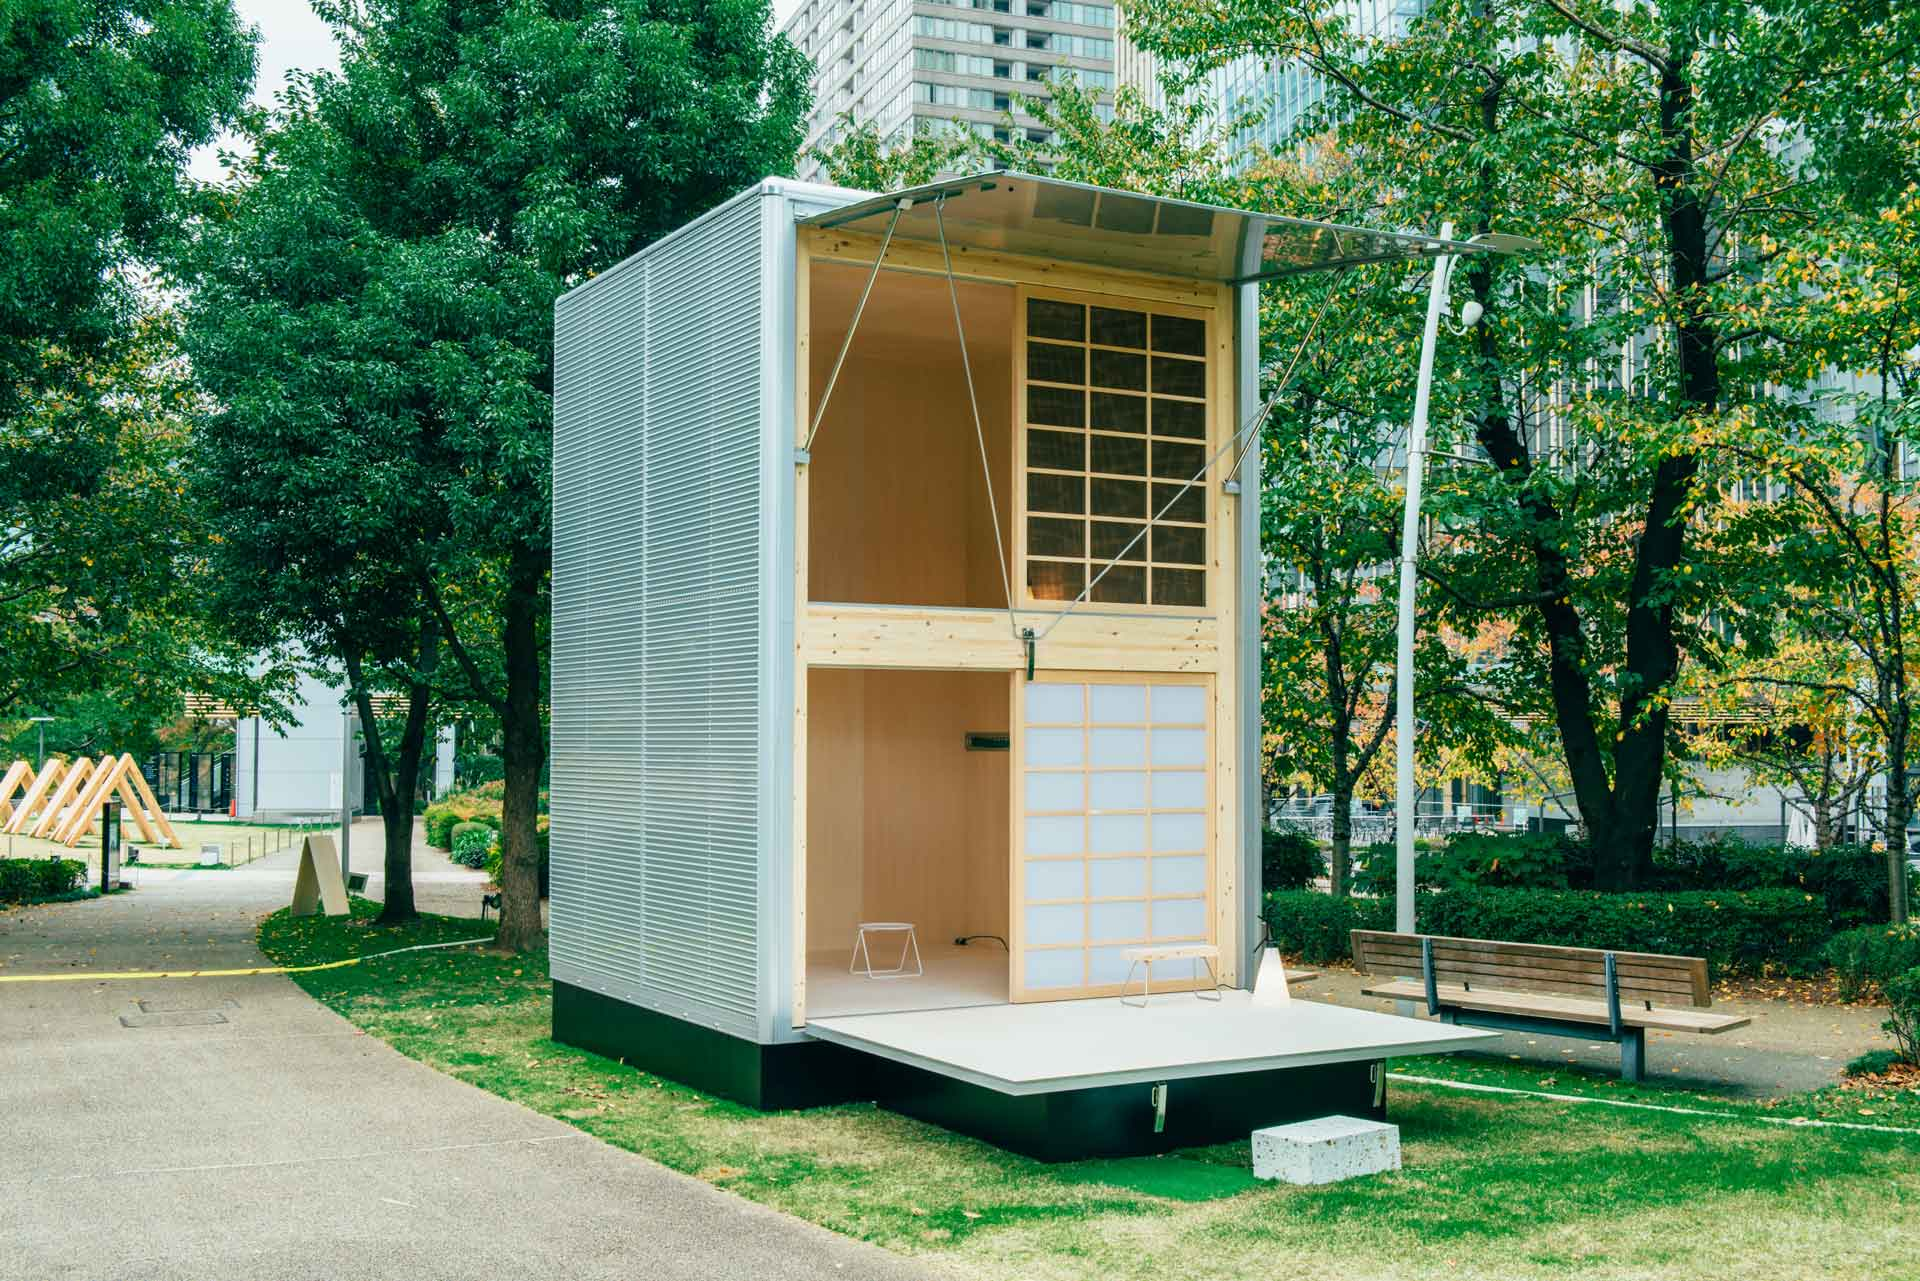 Konstantin Grcic's Hut for MUJI